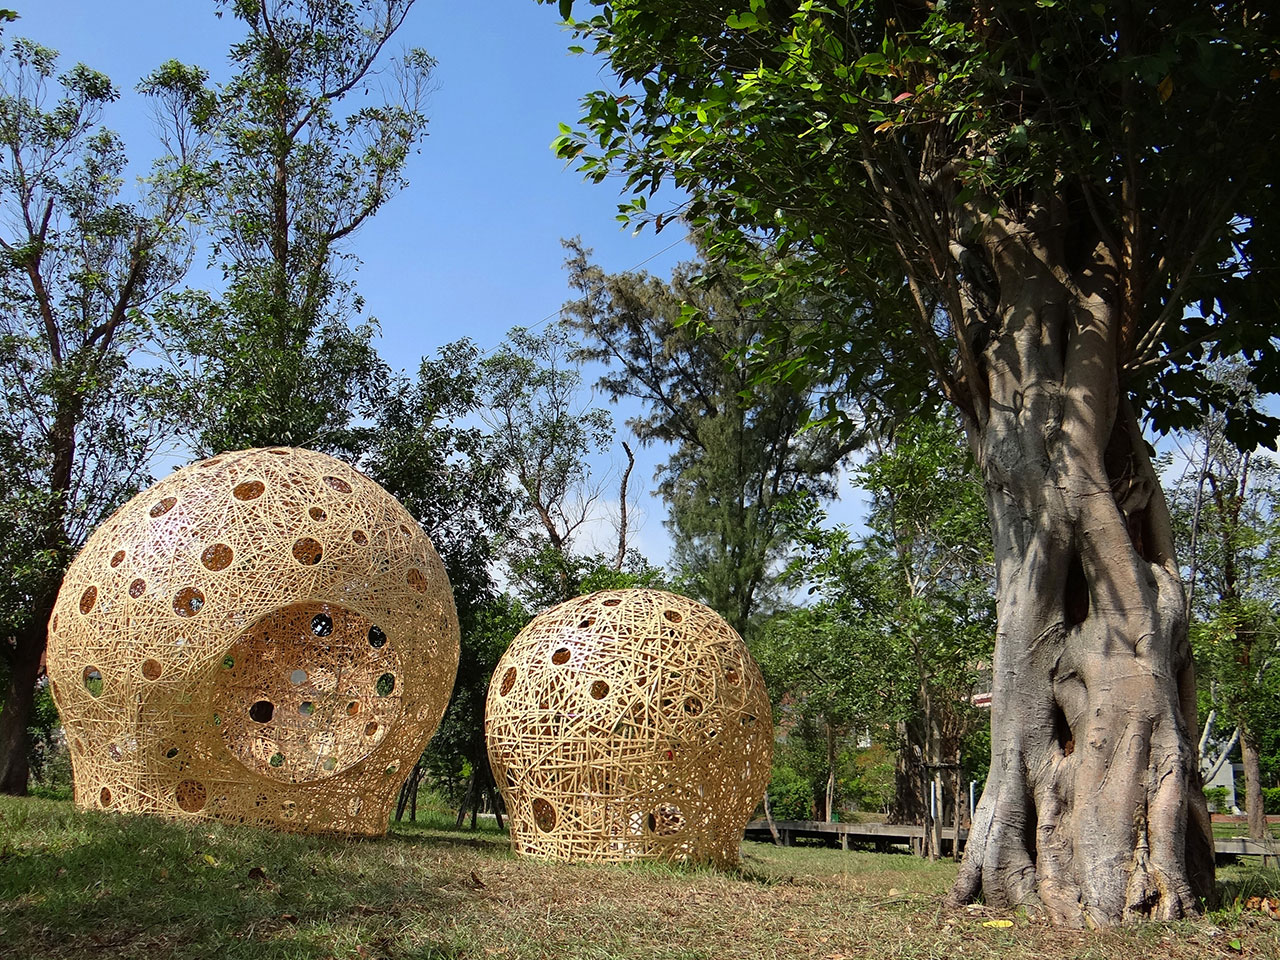 Cheng-Tsung Feng, Beside. Taiwanese Moso Bamboo, steel. 430 x 350 x 350cm (Big) / 135 x 100 x 100cm (Small). Photo by Ci-Xia Lin.